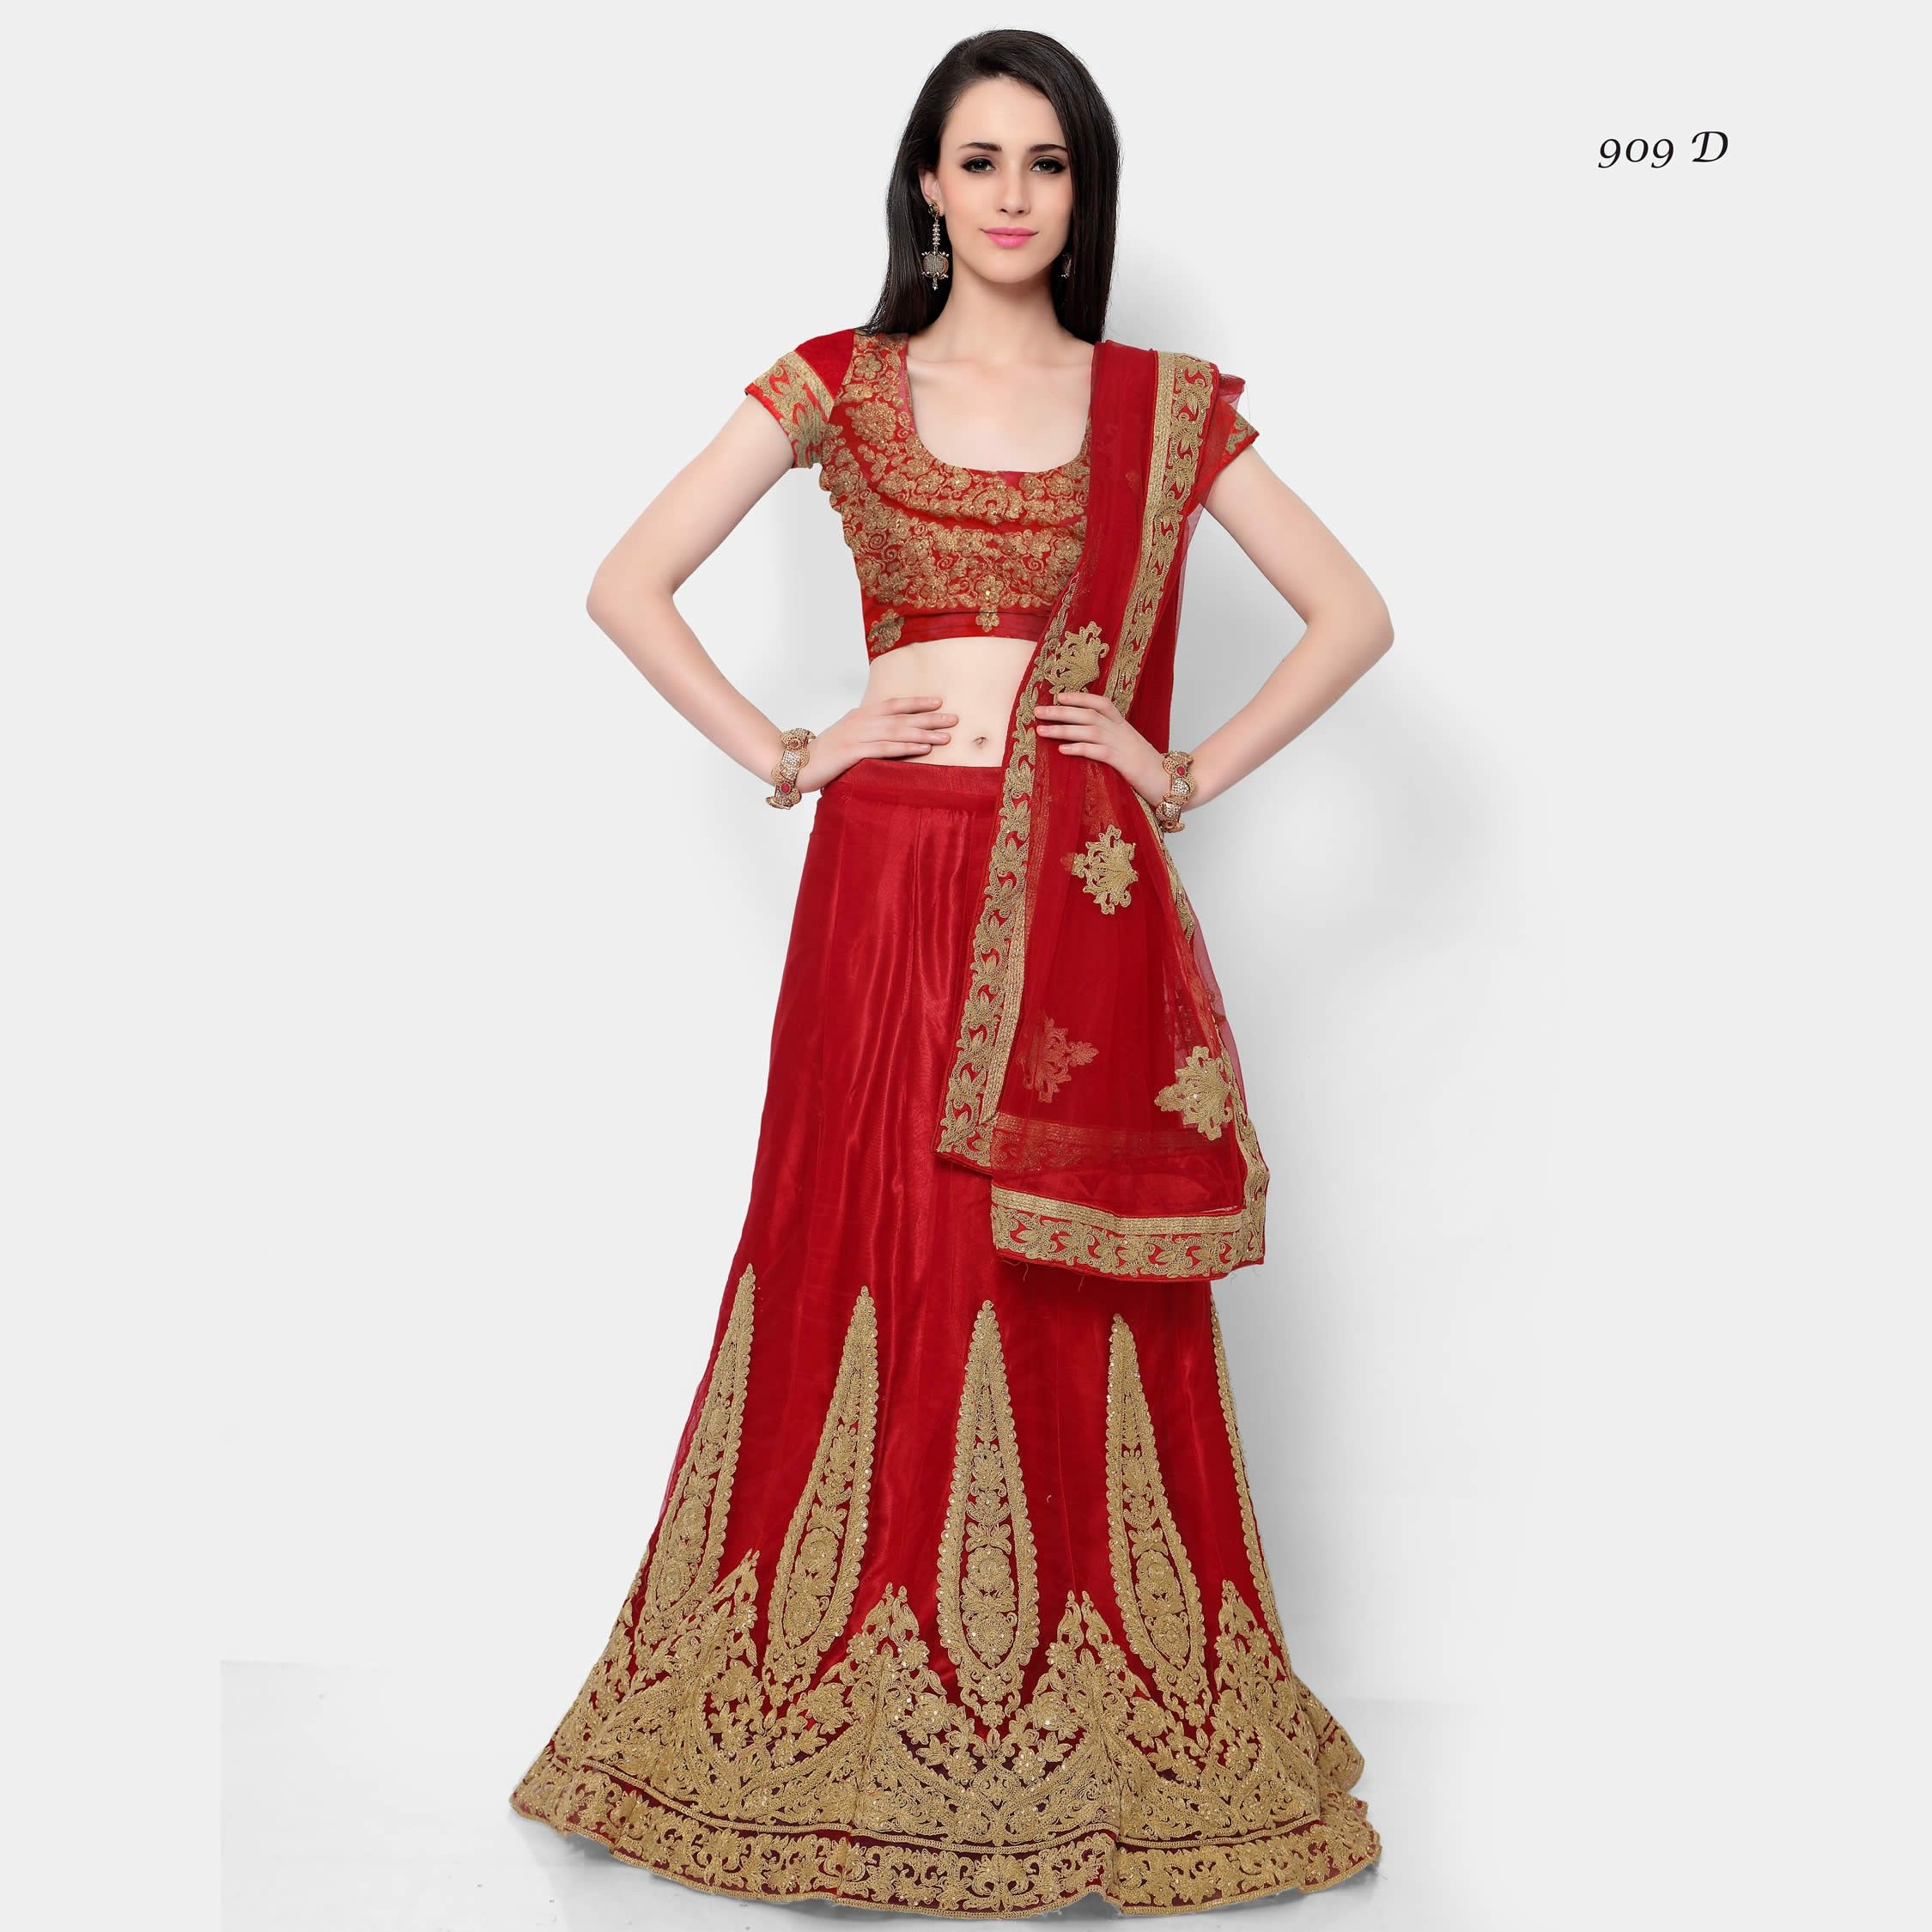 77153f8f26 Buy Apparels- Red Colour Net Designer Embroidery and Stone Work Lehenga  Choli